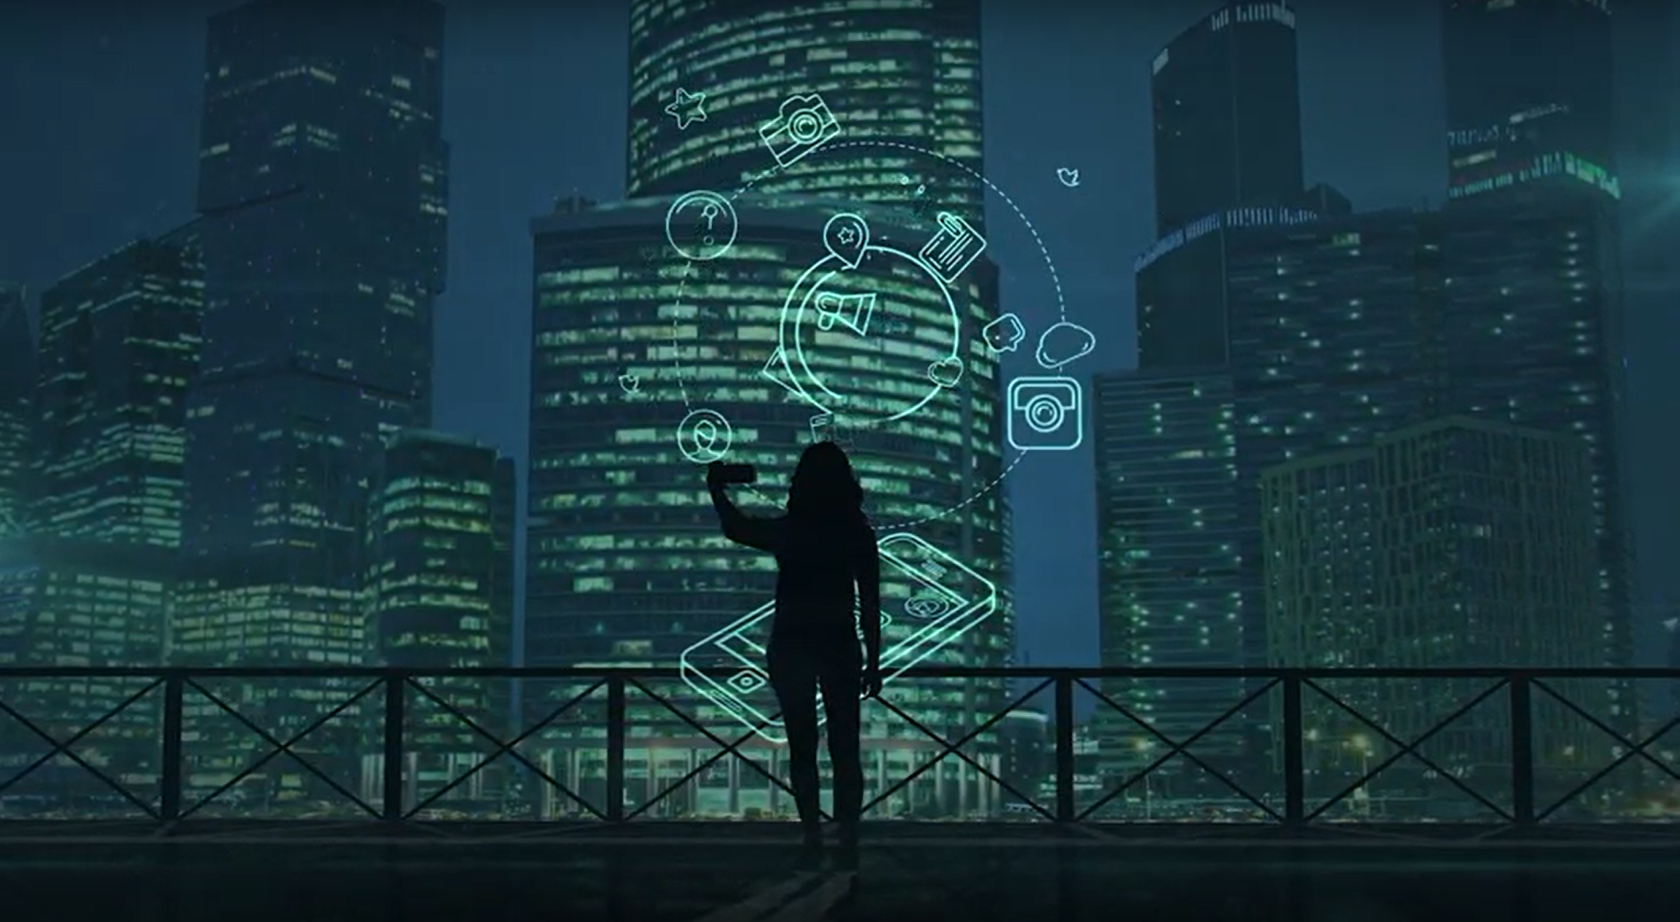 AUDREY concept image. Woman standing in front of a smart phone with different app icons, with a city backdrop.